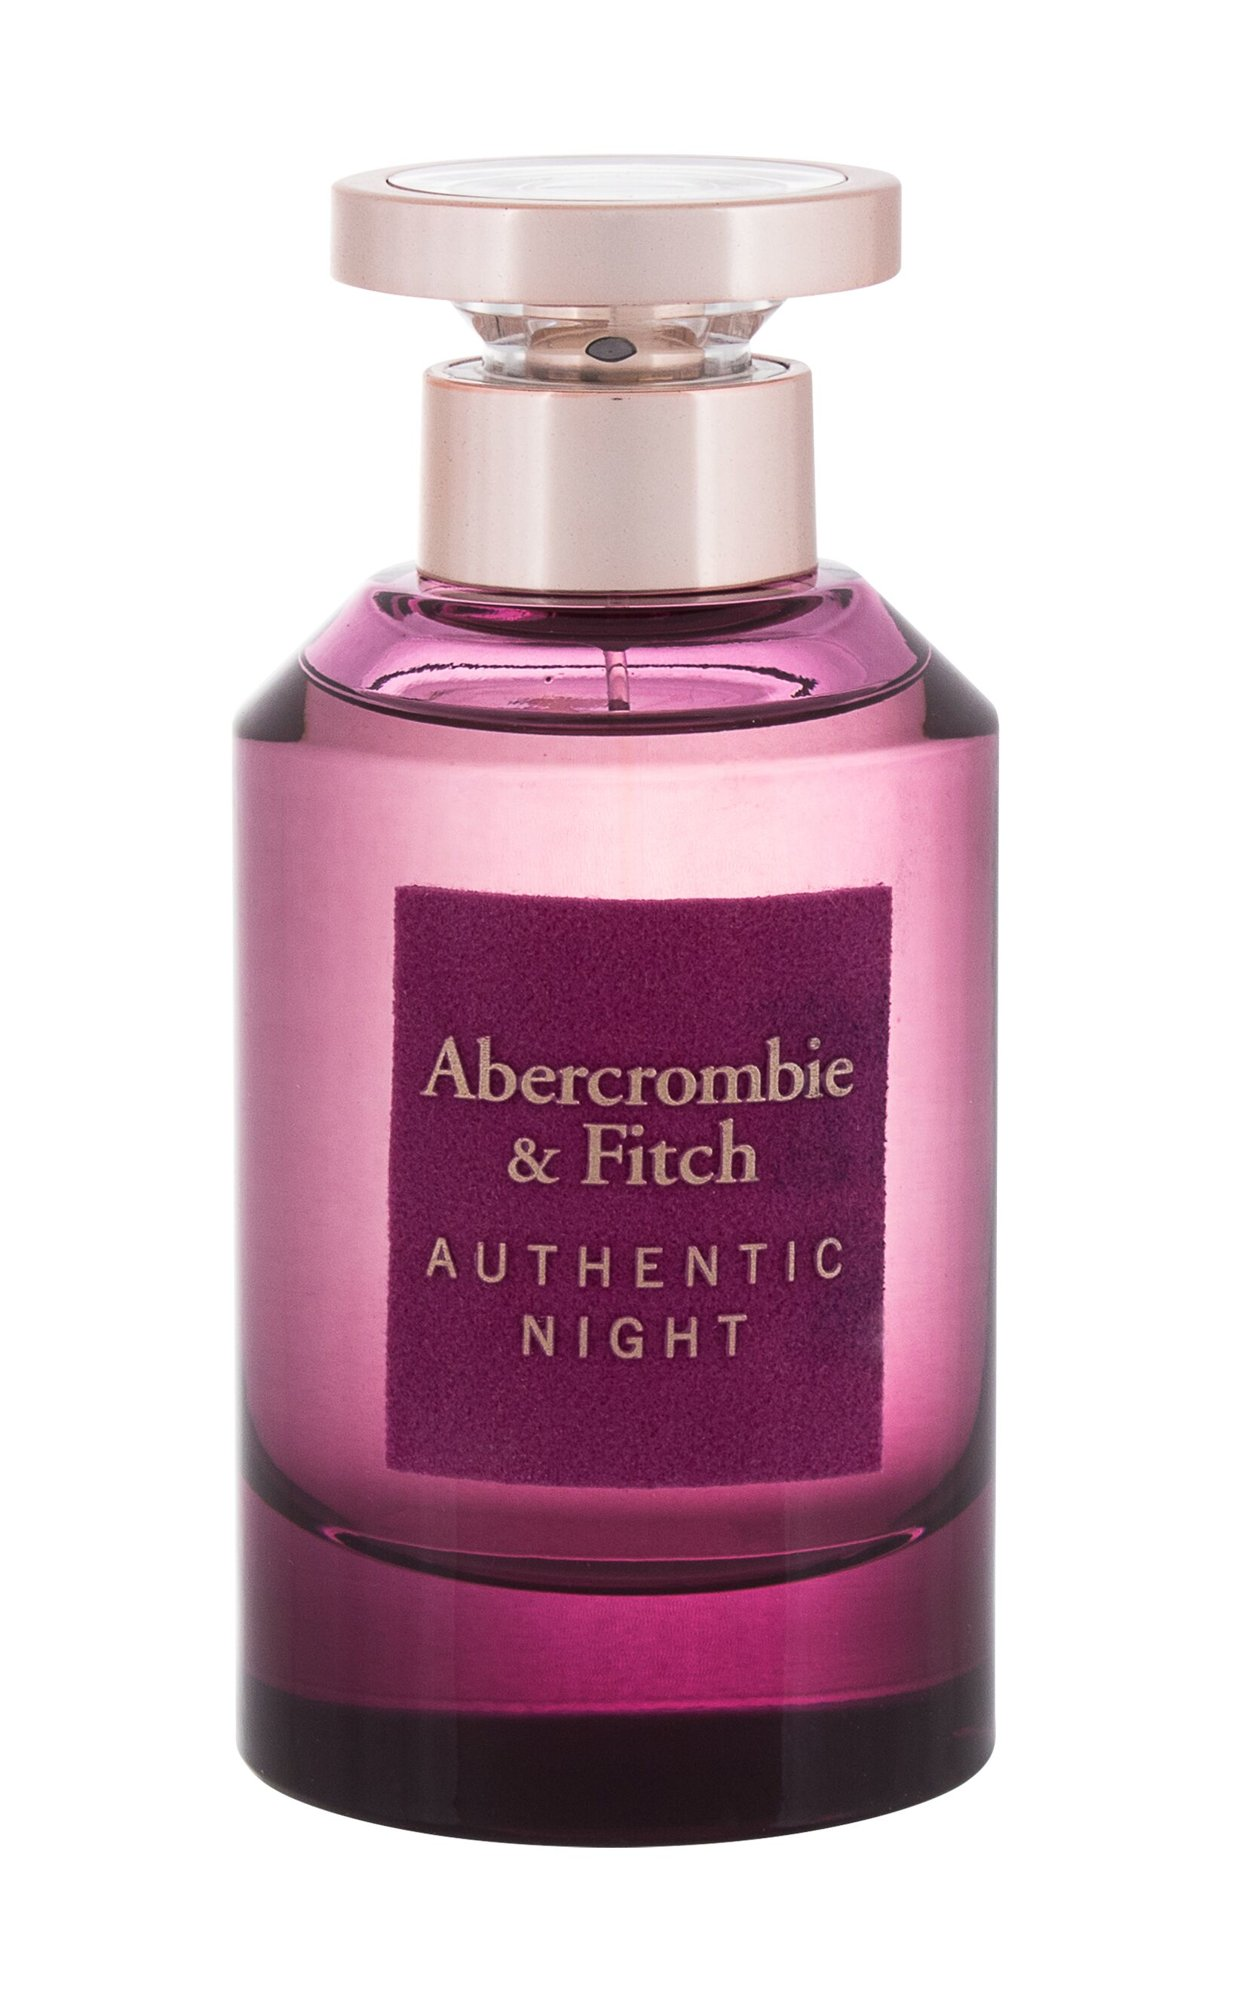 Abercrombie & Fitch Authentic Night, edp 100ml